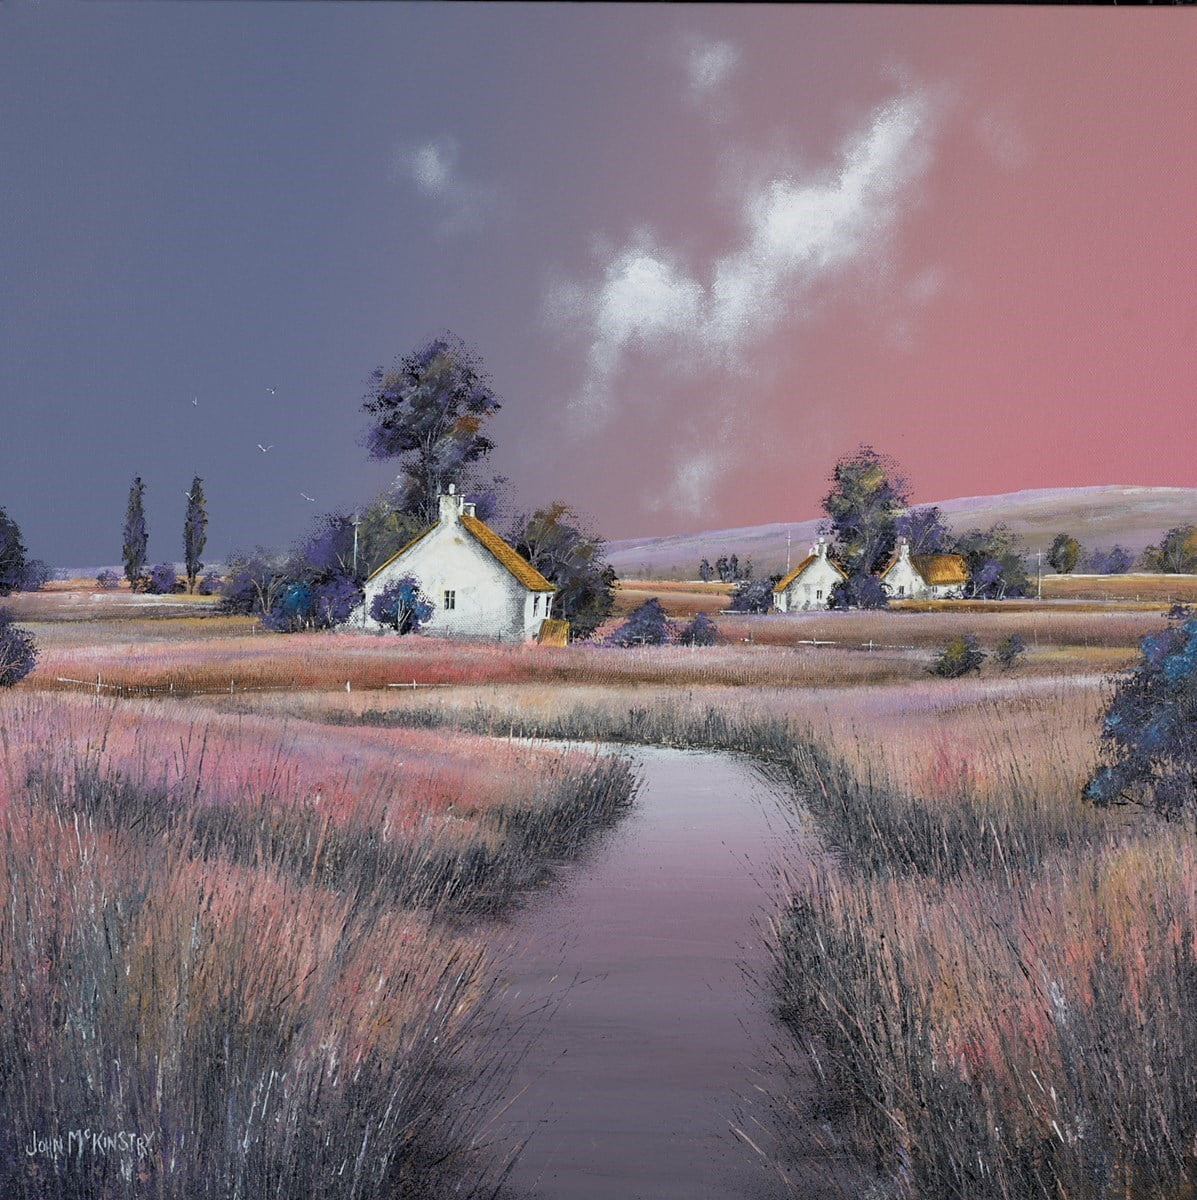 Marsh Farm Cottage ~ John Mckinstry